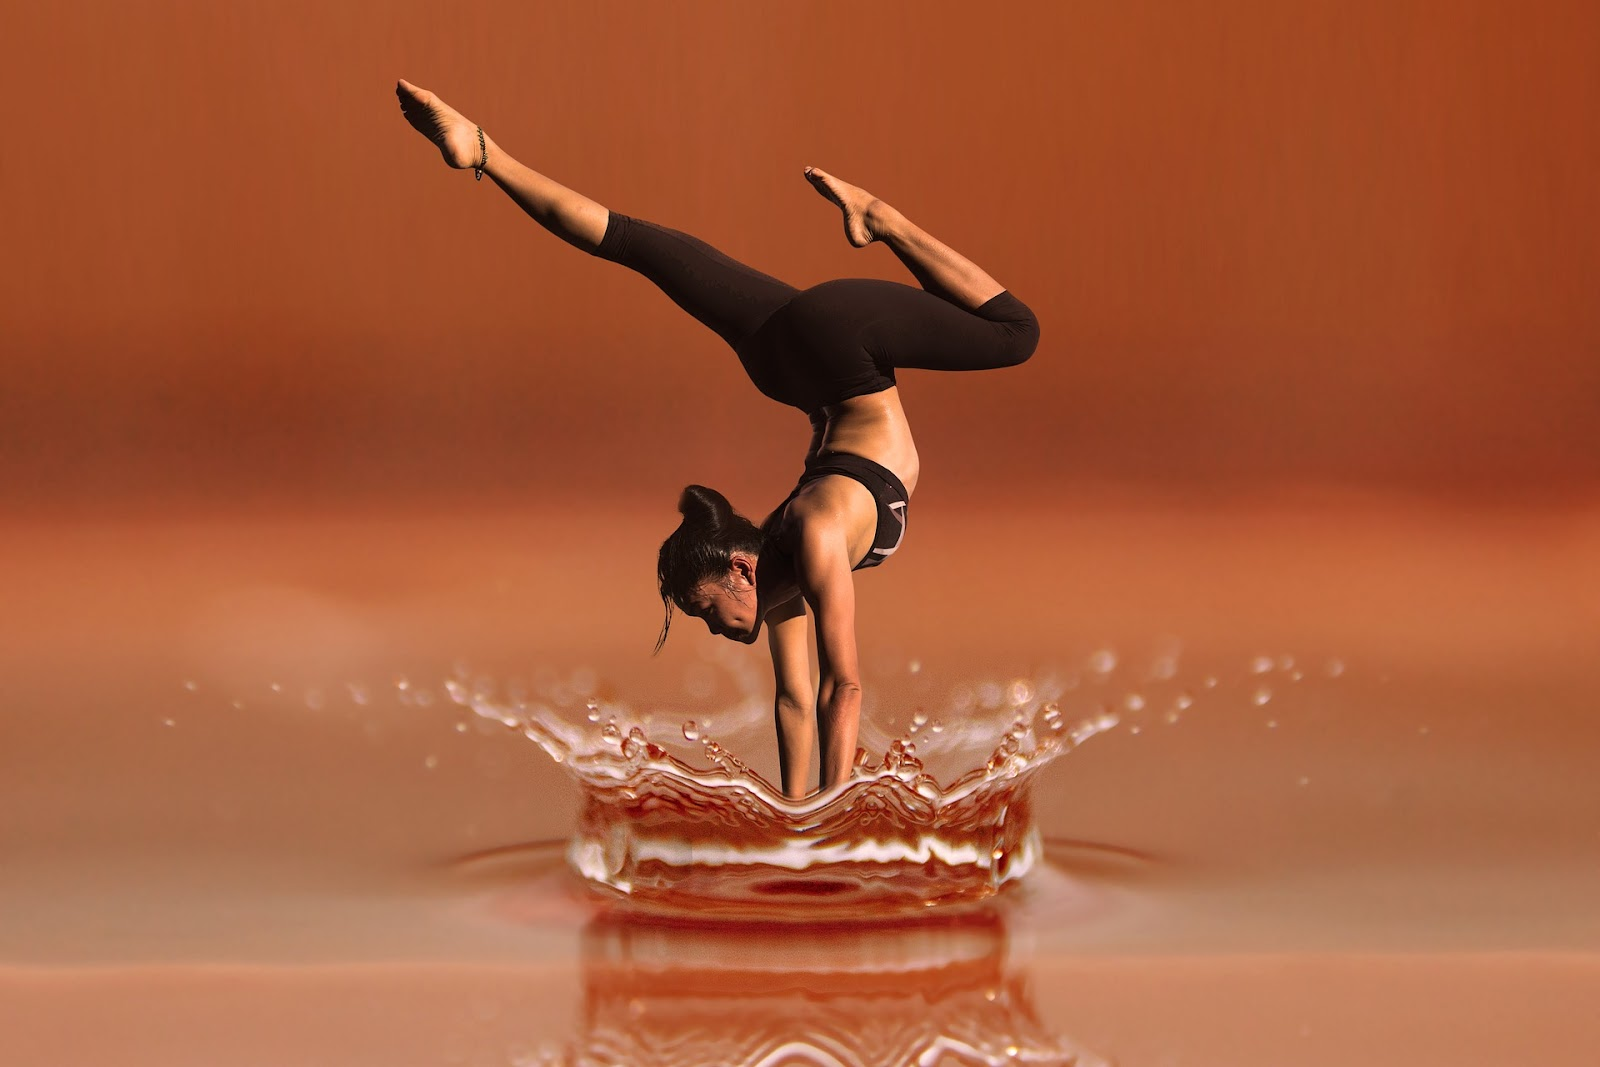 trusii woman balancing on water